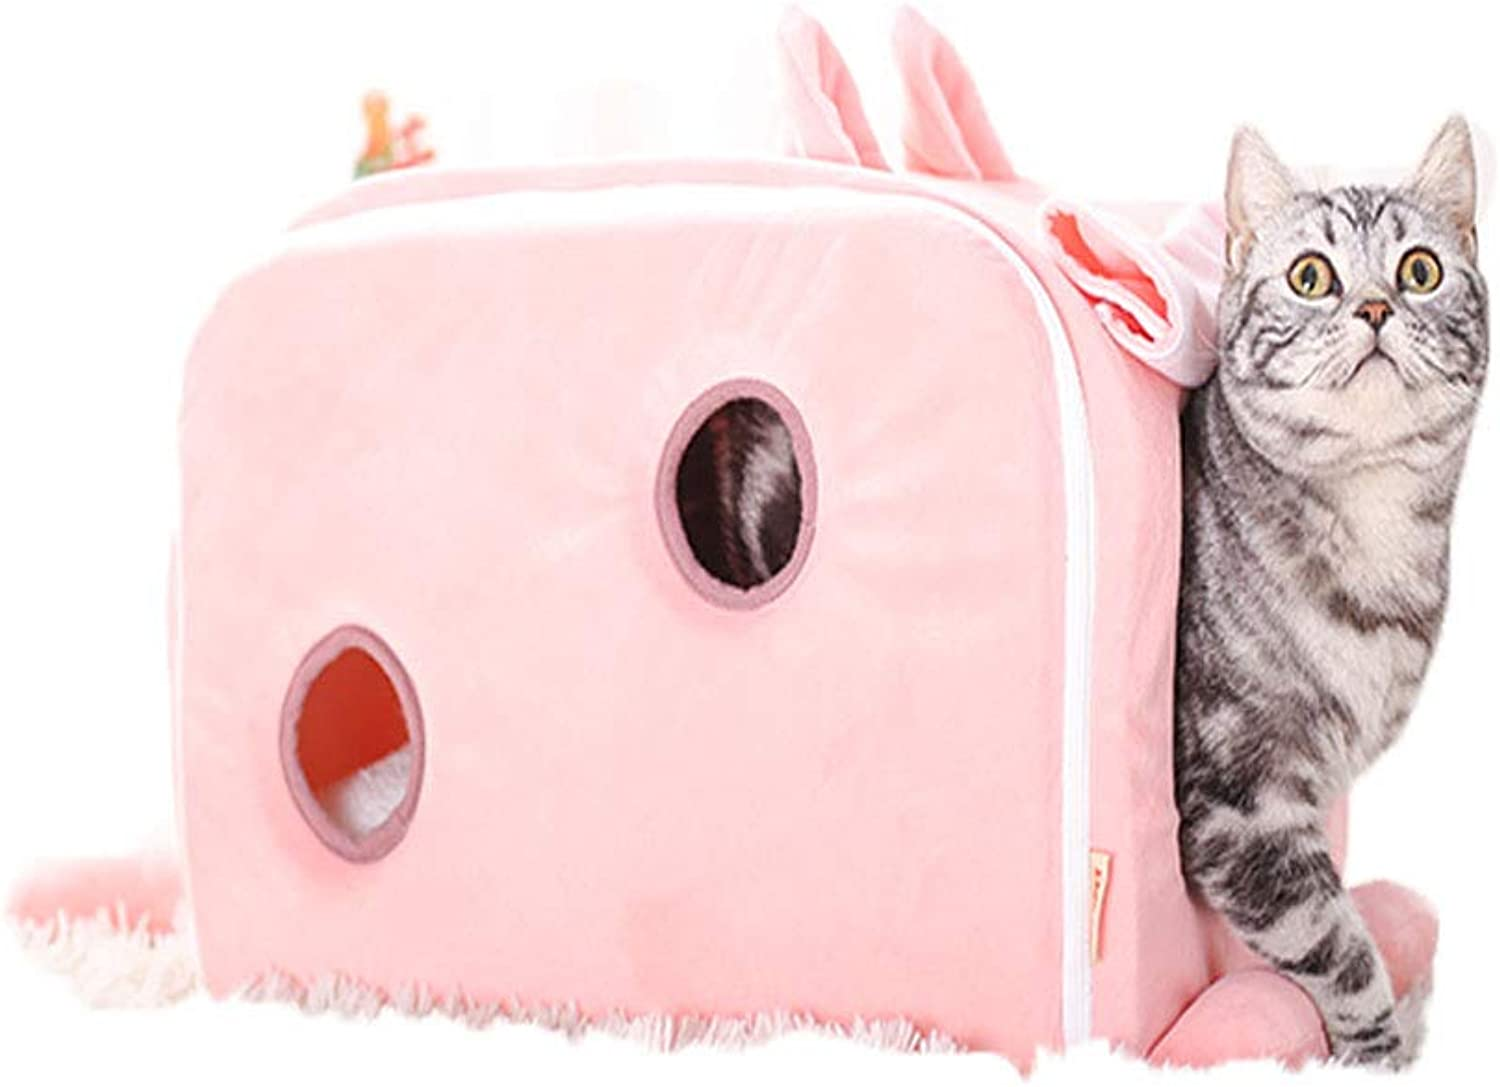 FITIN Pet Nest Cat Litter Princess Cats House Cute Cat Bed Comfortable Soft Pet House Suitable For Most Small Animals,rabbit,M